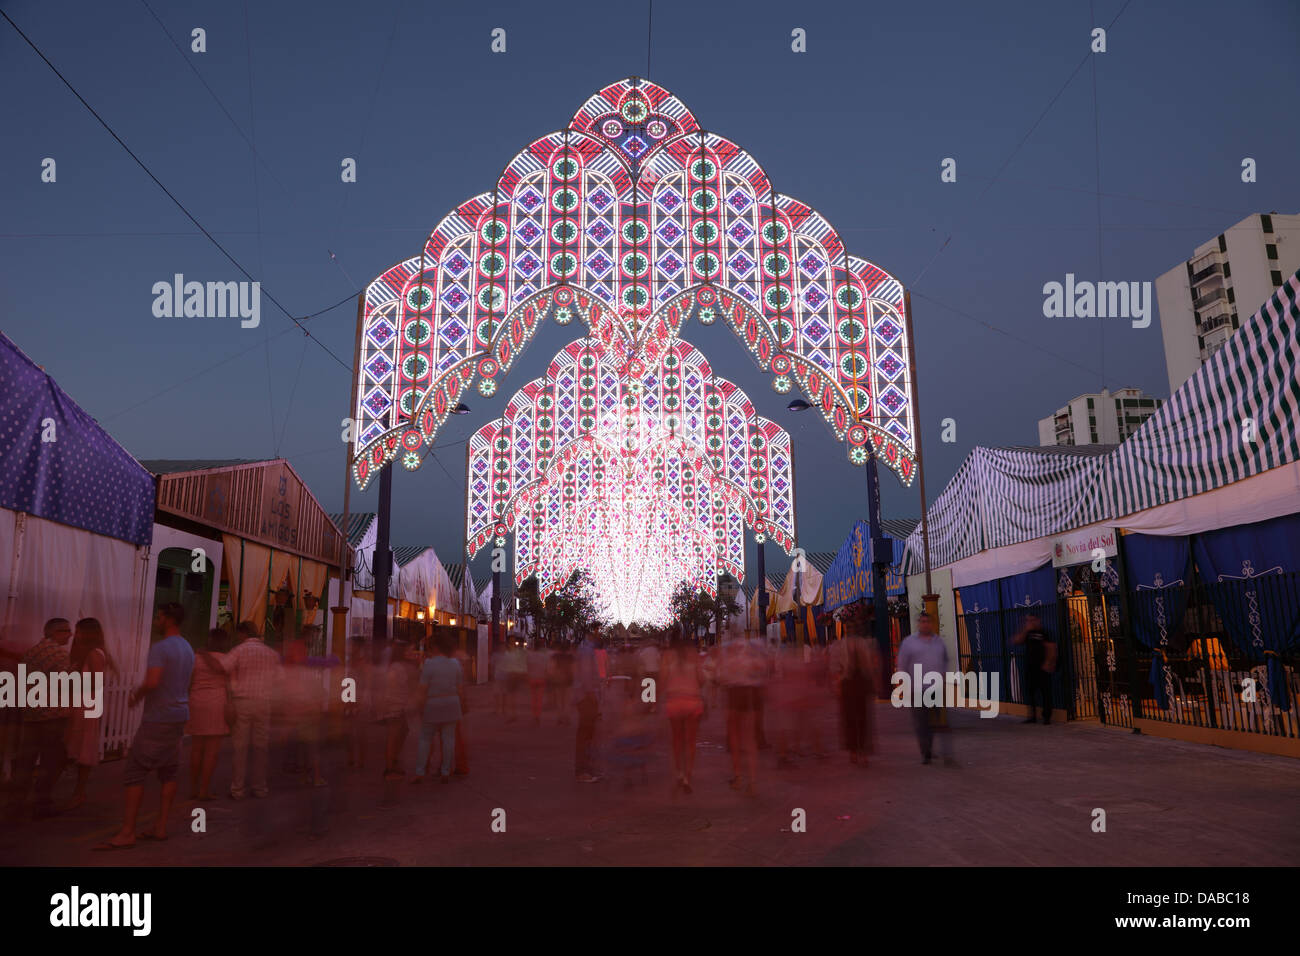 Real Partyzelt Fairground Event Stock Photos Fairground Event Stock Images Alamy